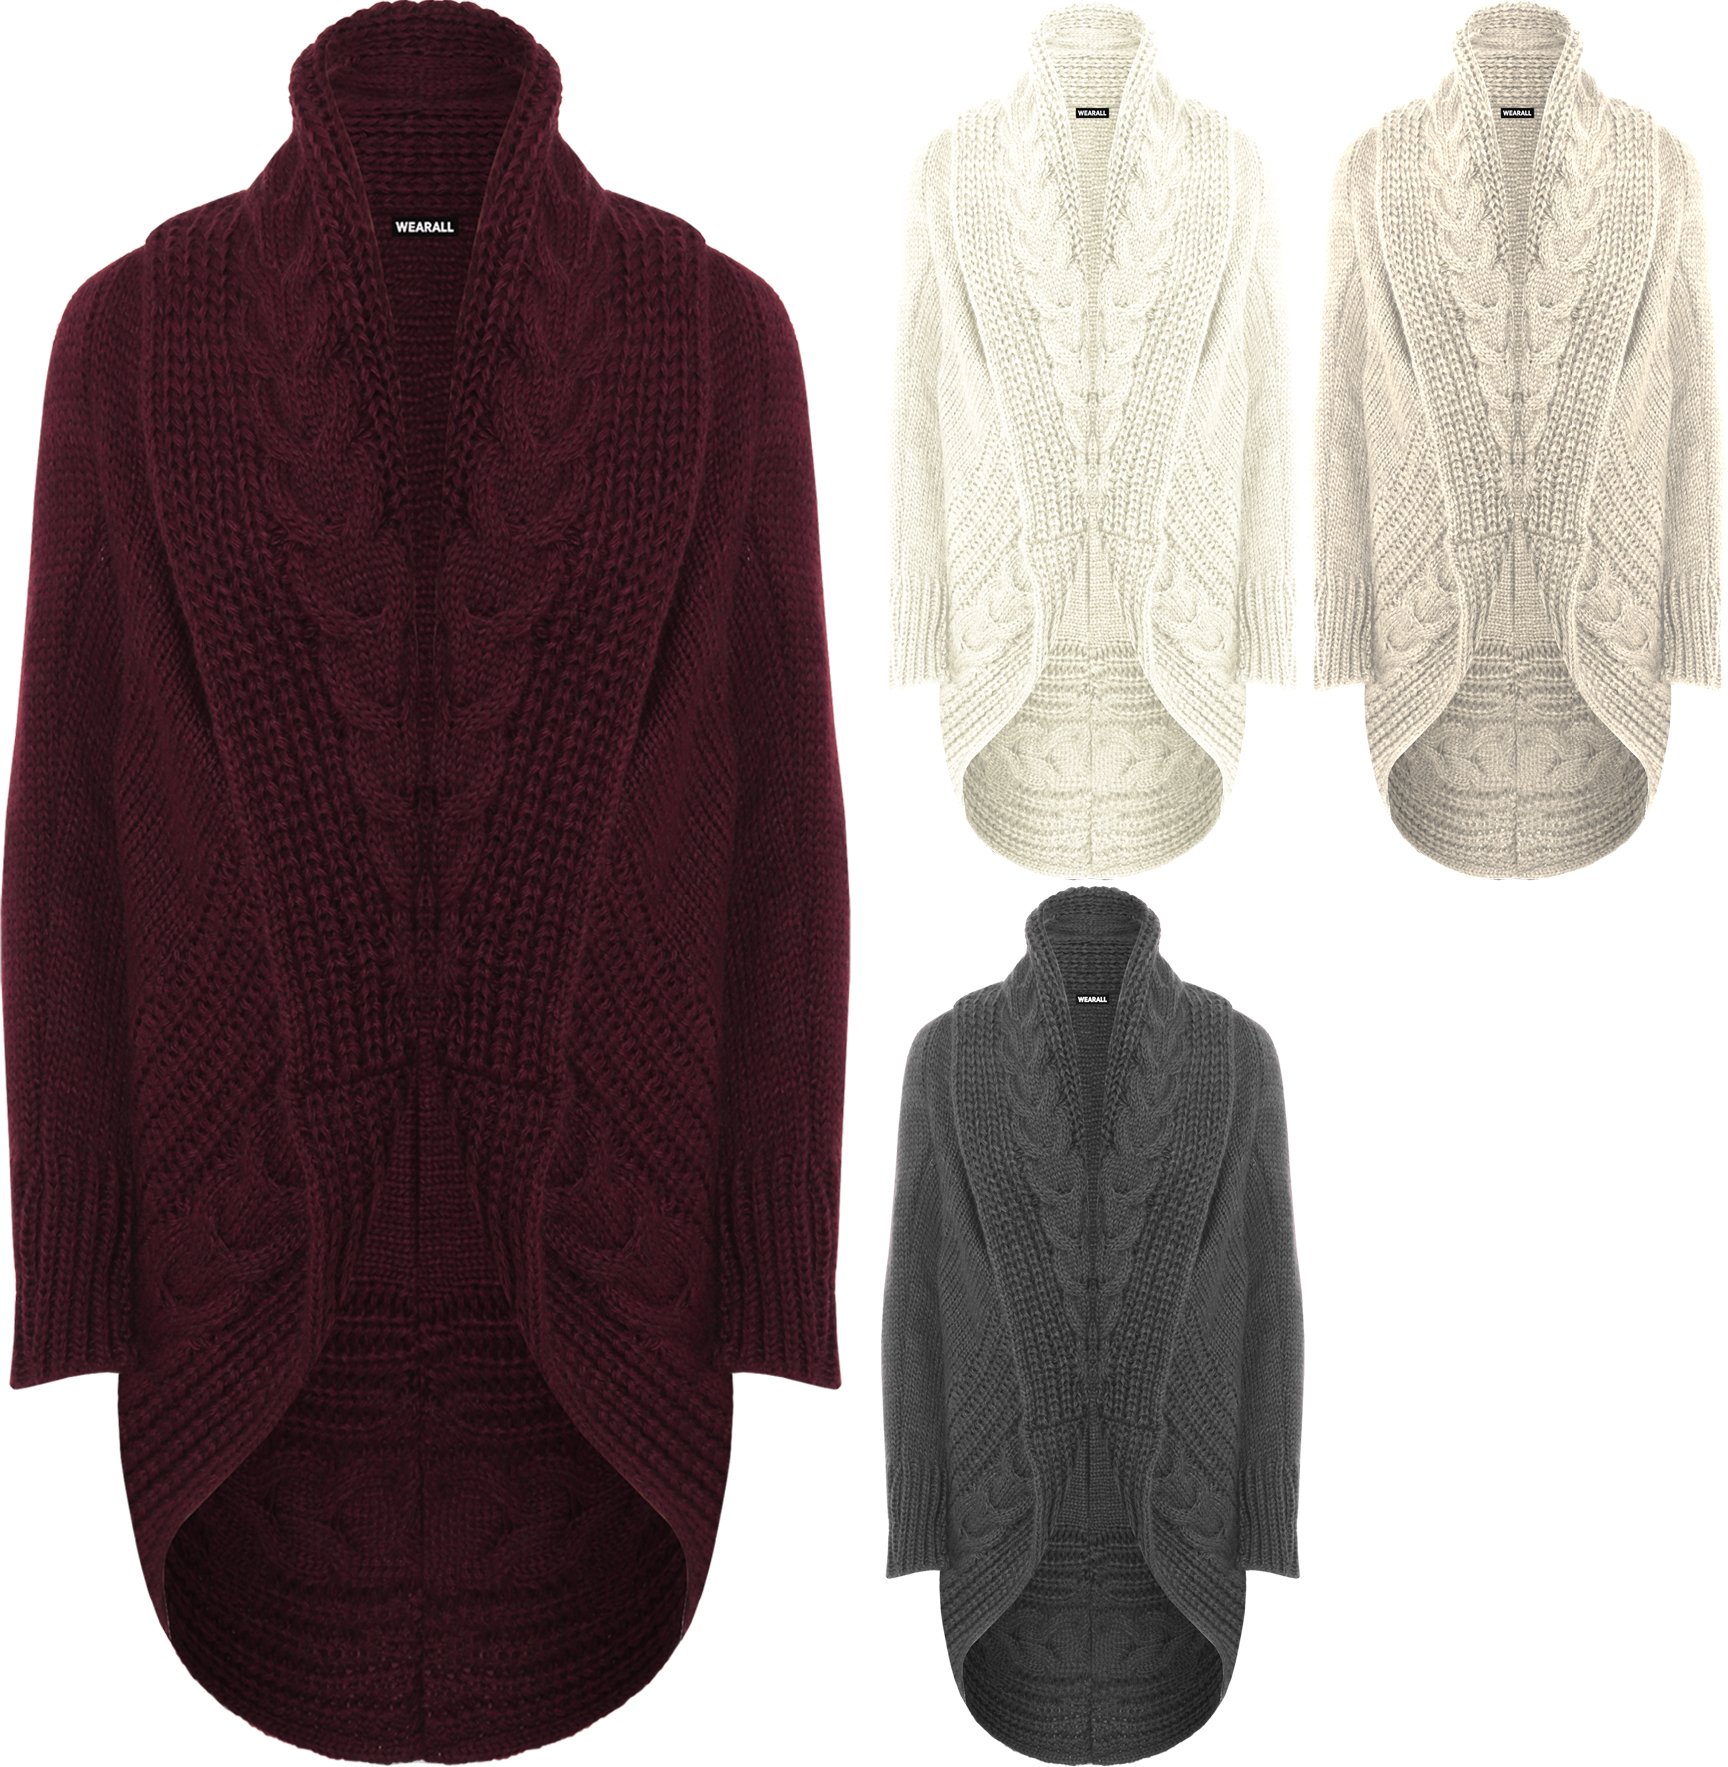 Knitting Pattern Chunky Cable Cardigan : Womens Cable Knitted Cardigan Top Ladies Long Sleeve Open Aran Chunky Plain ...